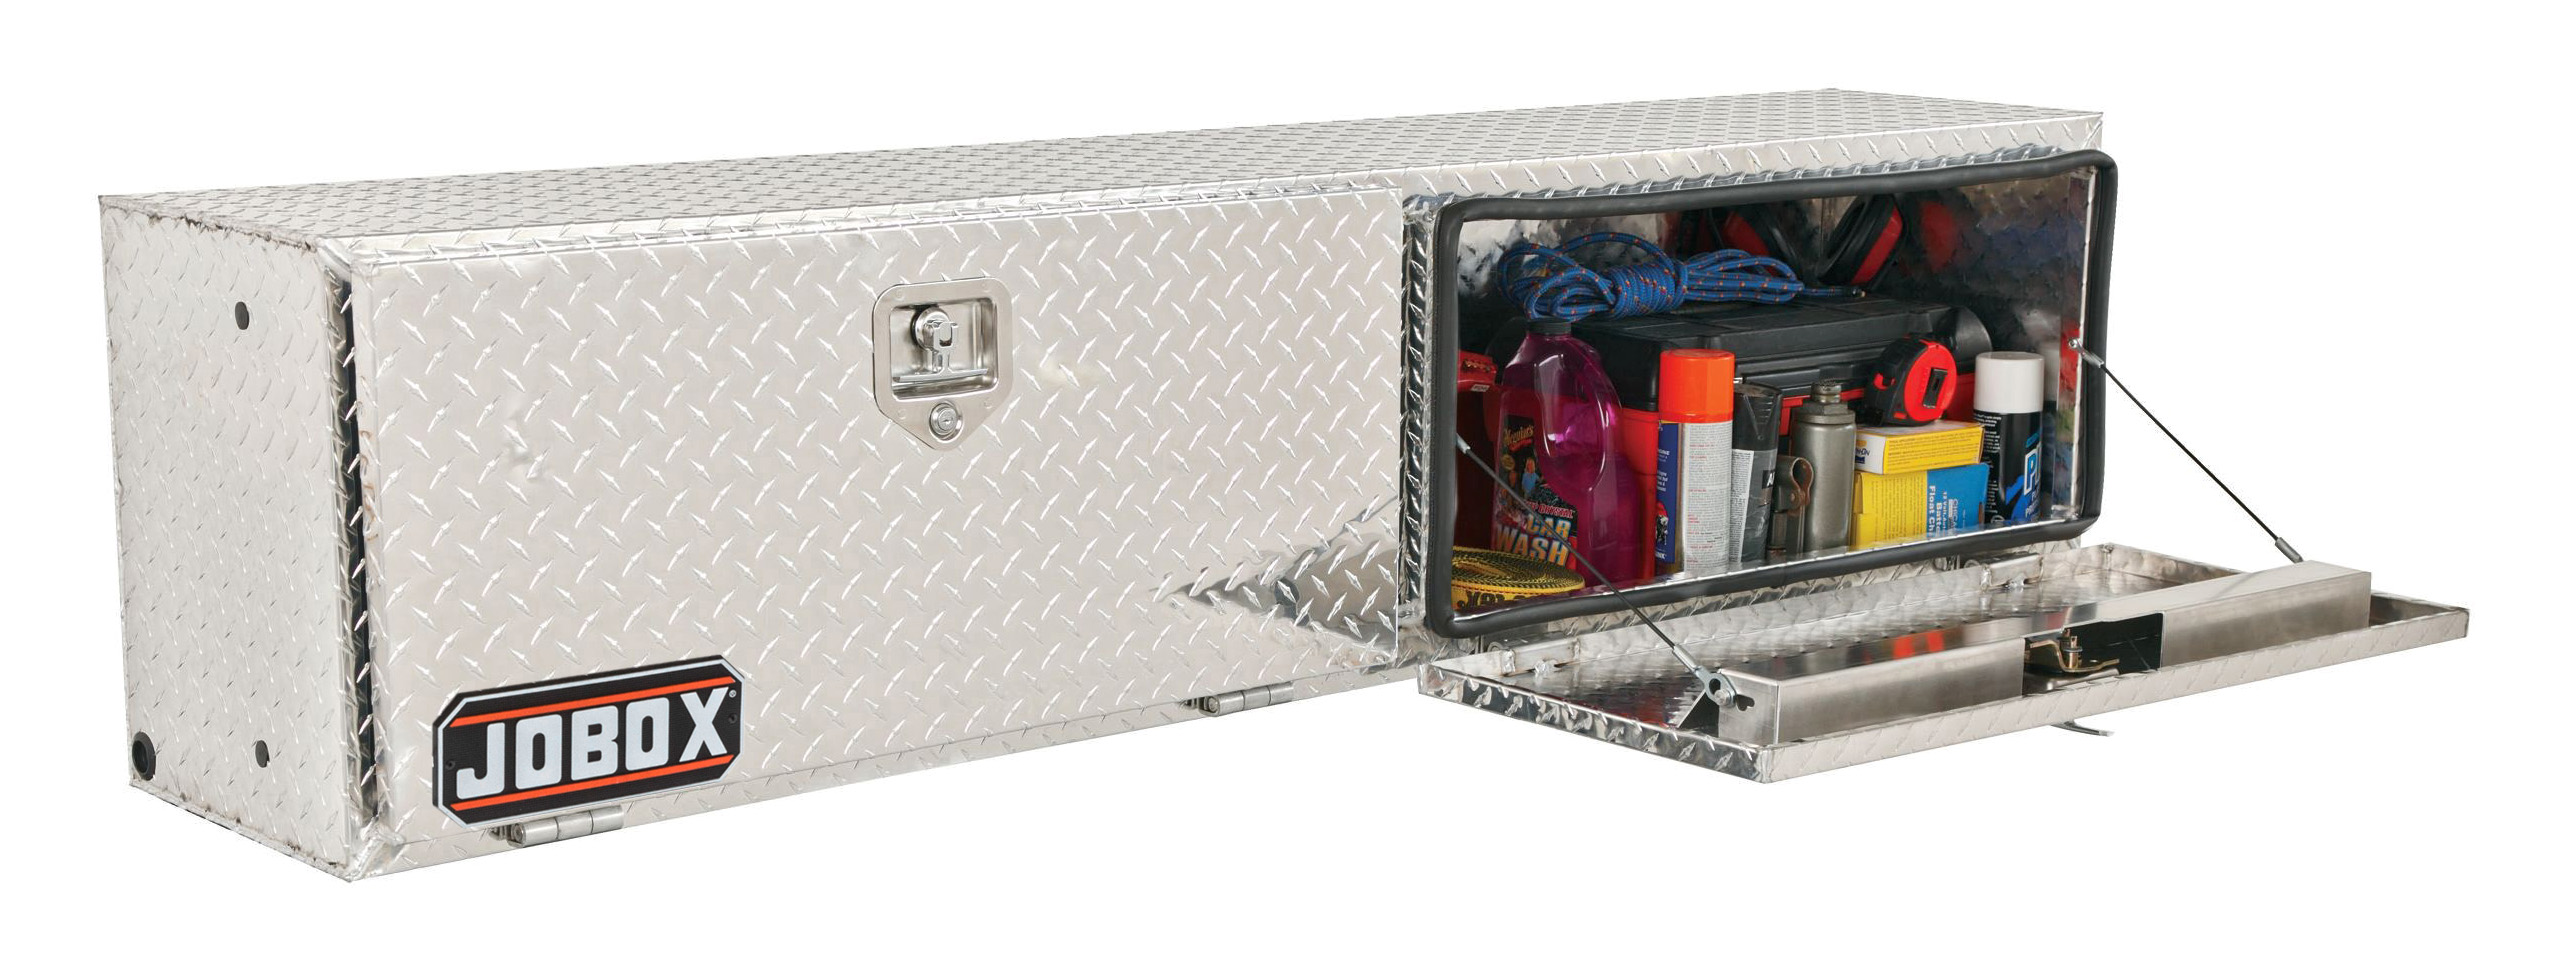 JOBOX Aluminum and Steel Topside Tool Boxes